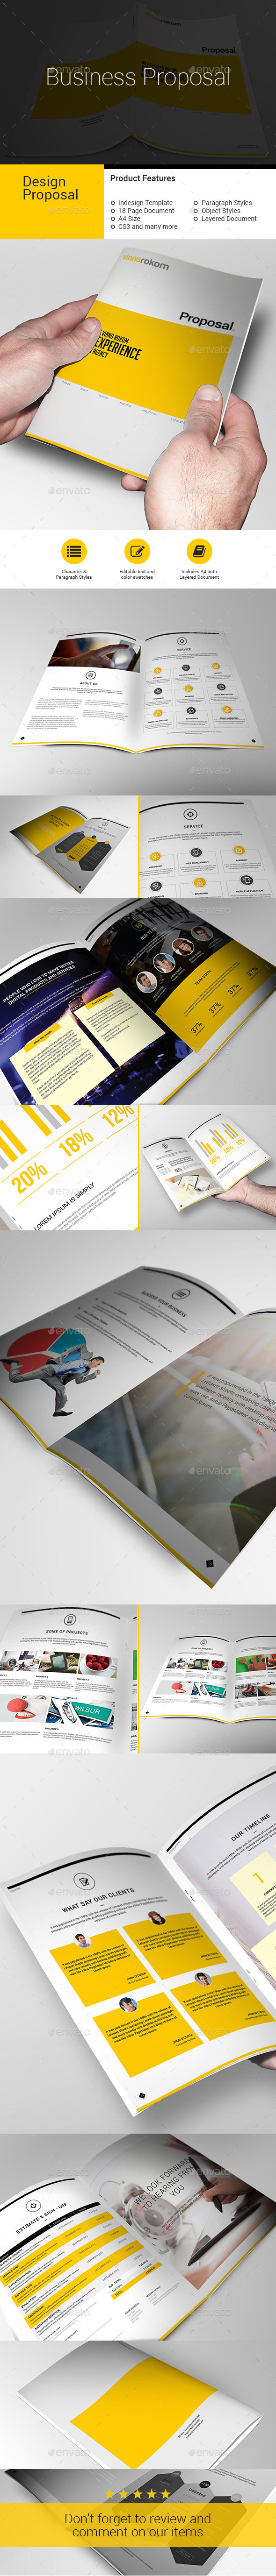 GraphicRiver Business PROPOSAL 10149075